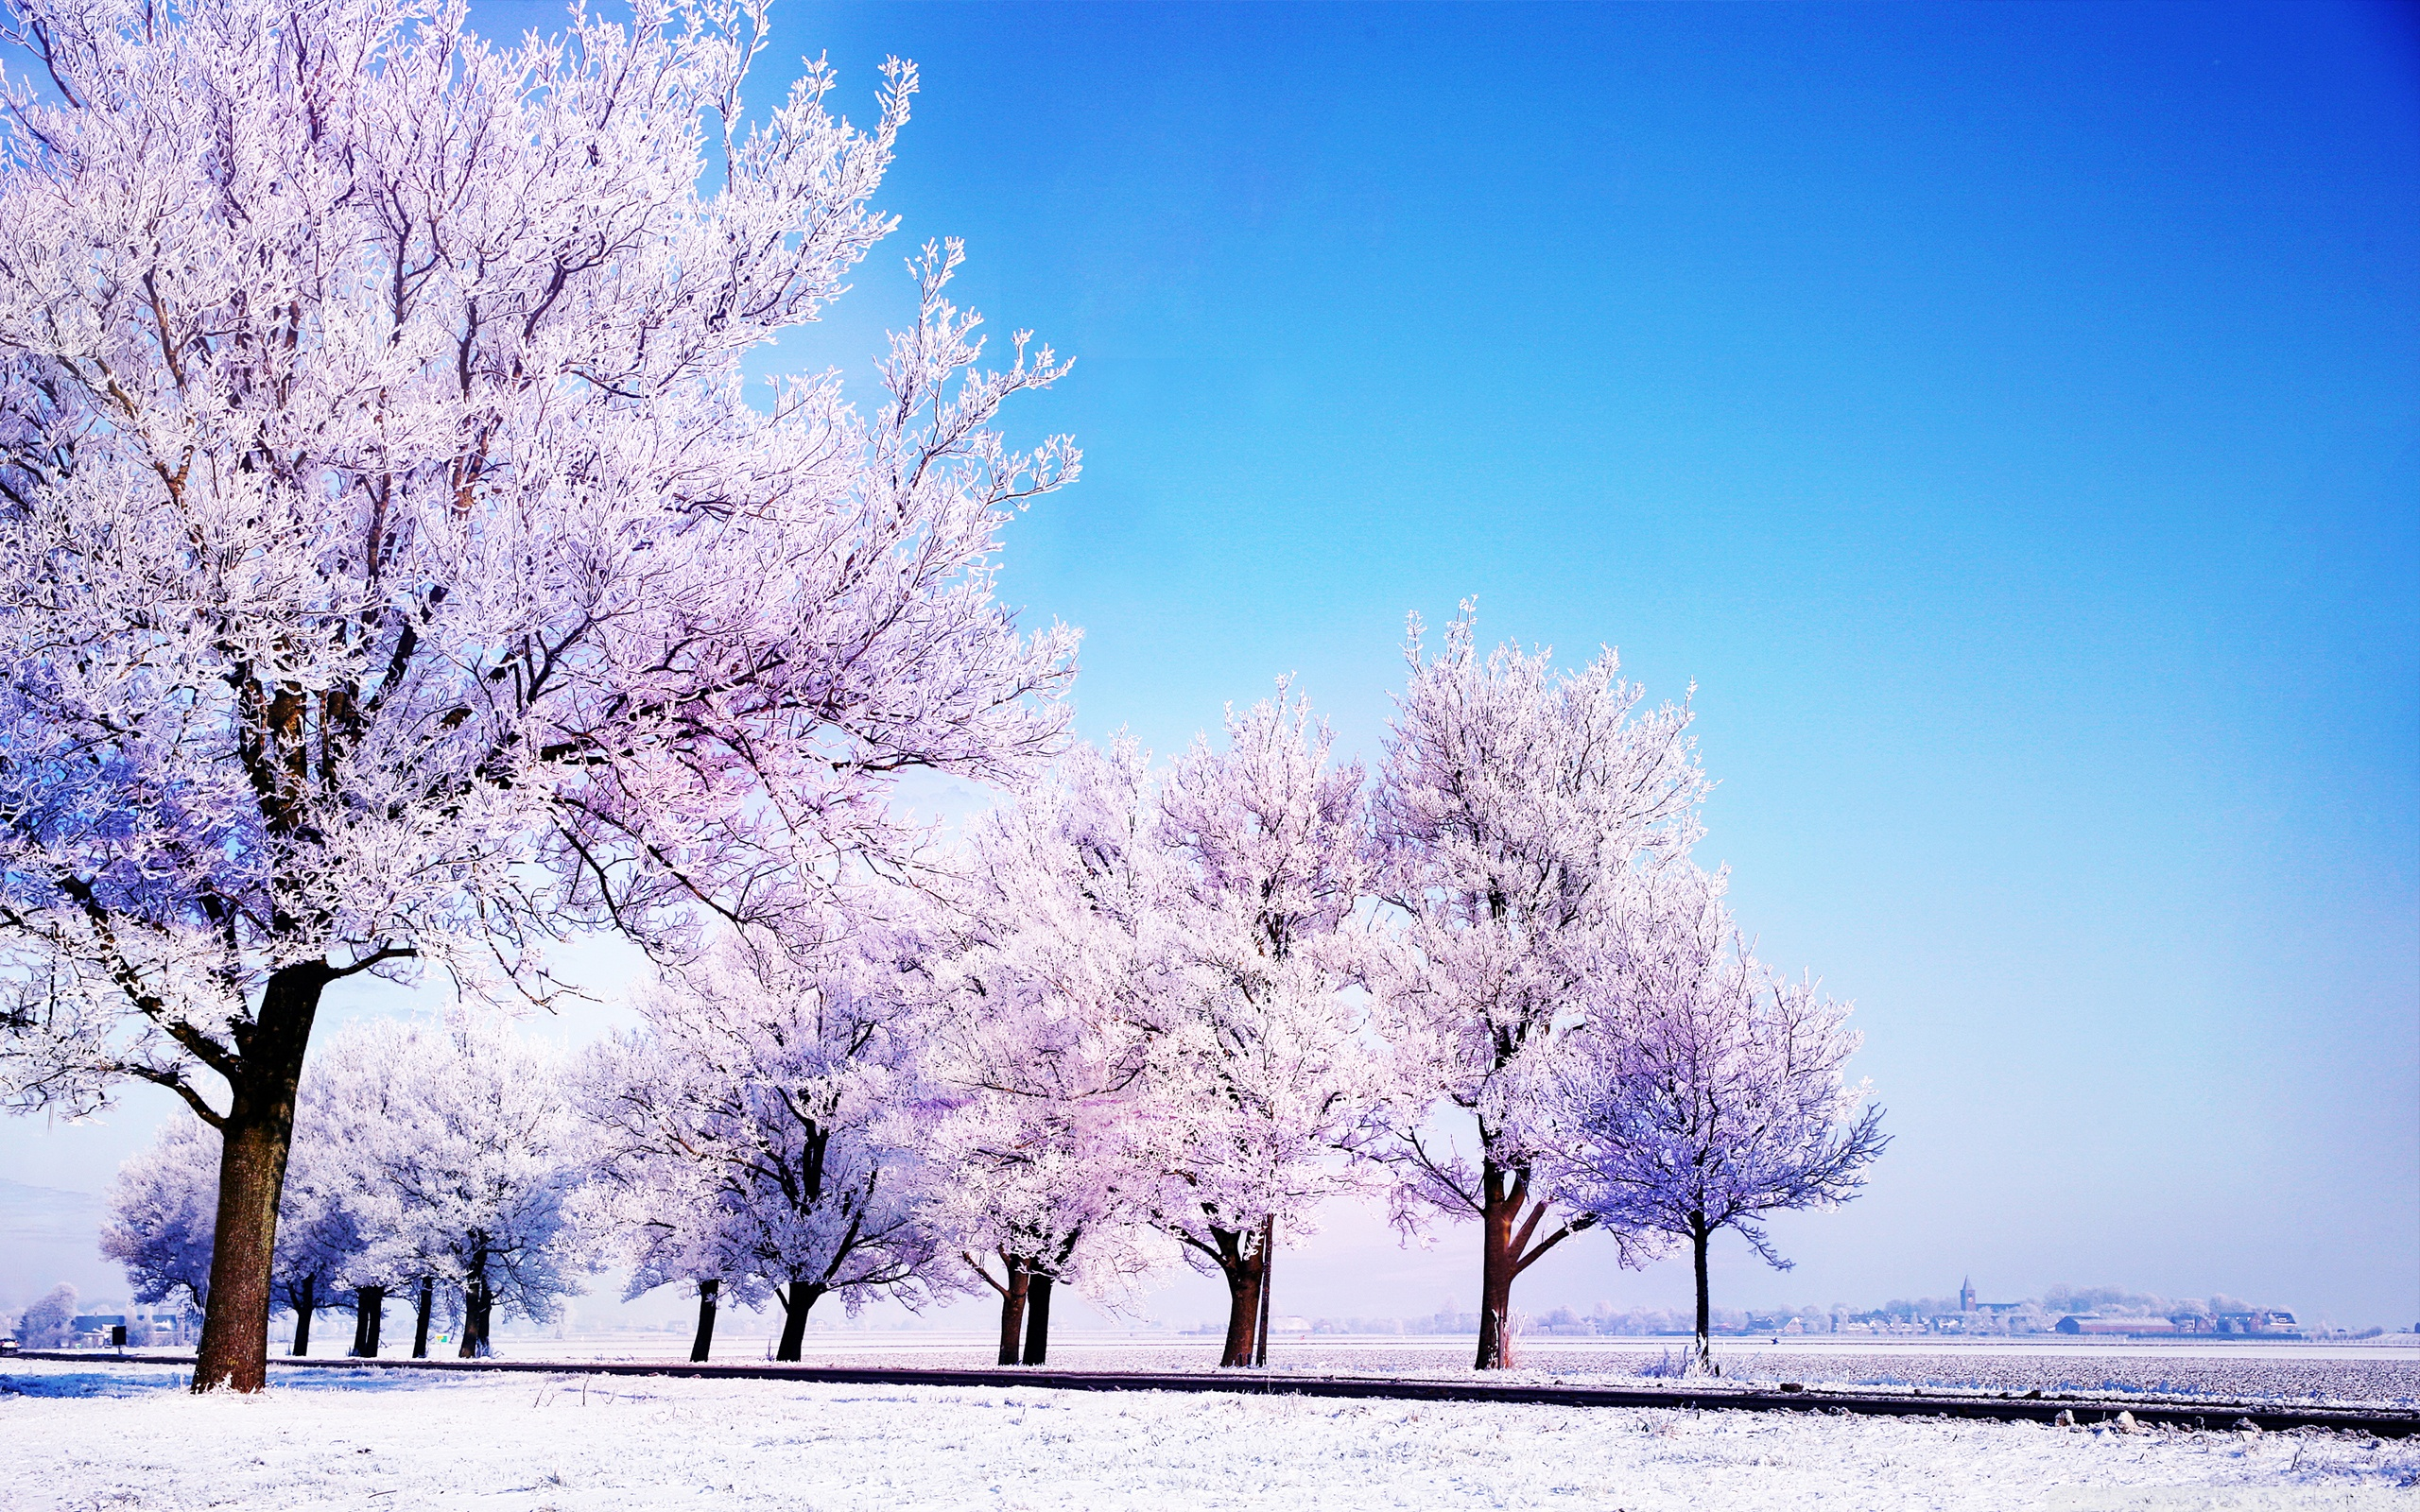 Winter Backgrounds wallpaper 2560x1600 51266 2560x1600